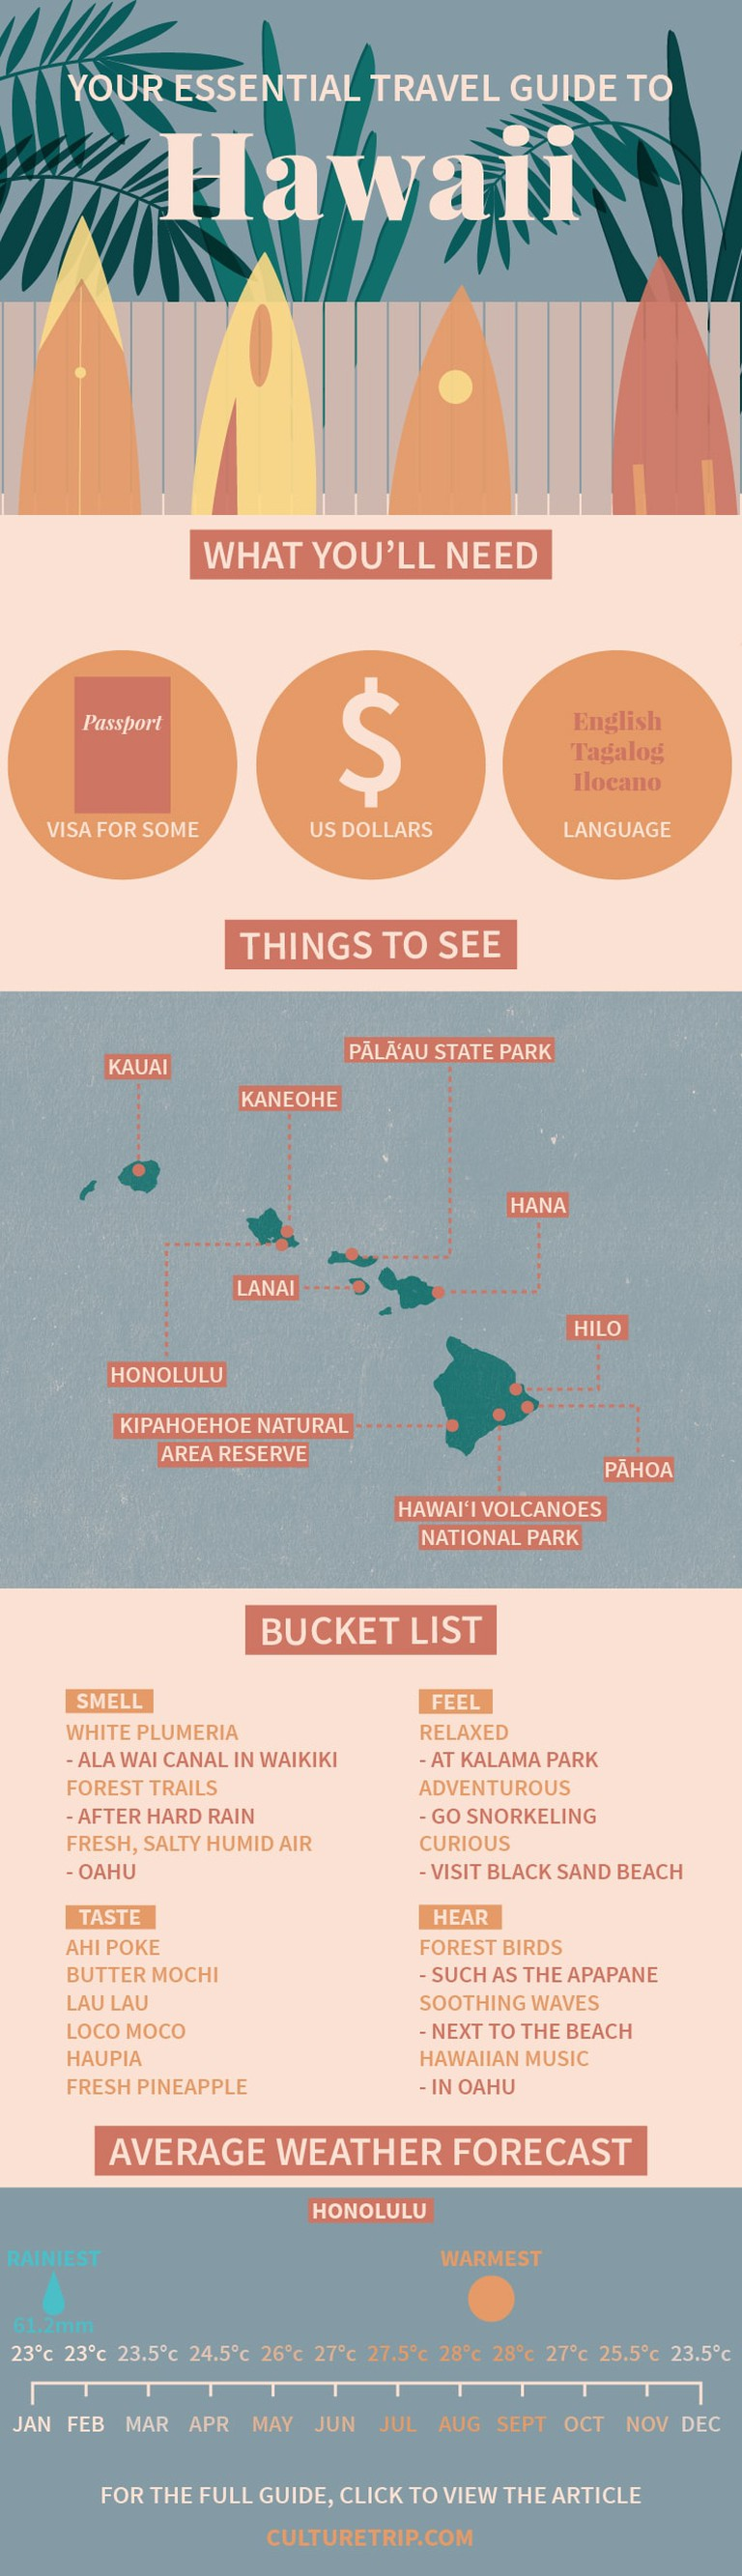 A travel guide for planning your trip to Hawaii.